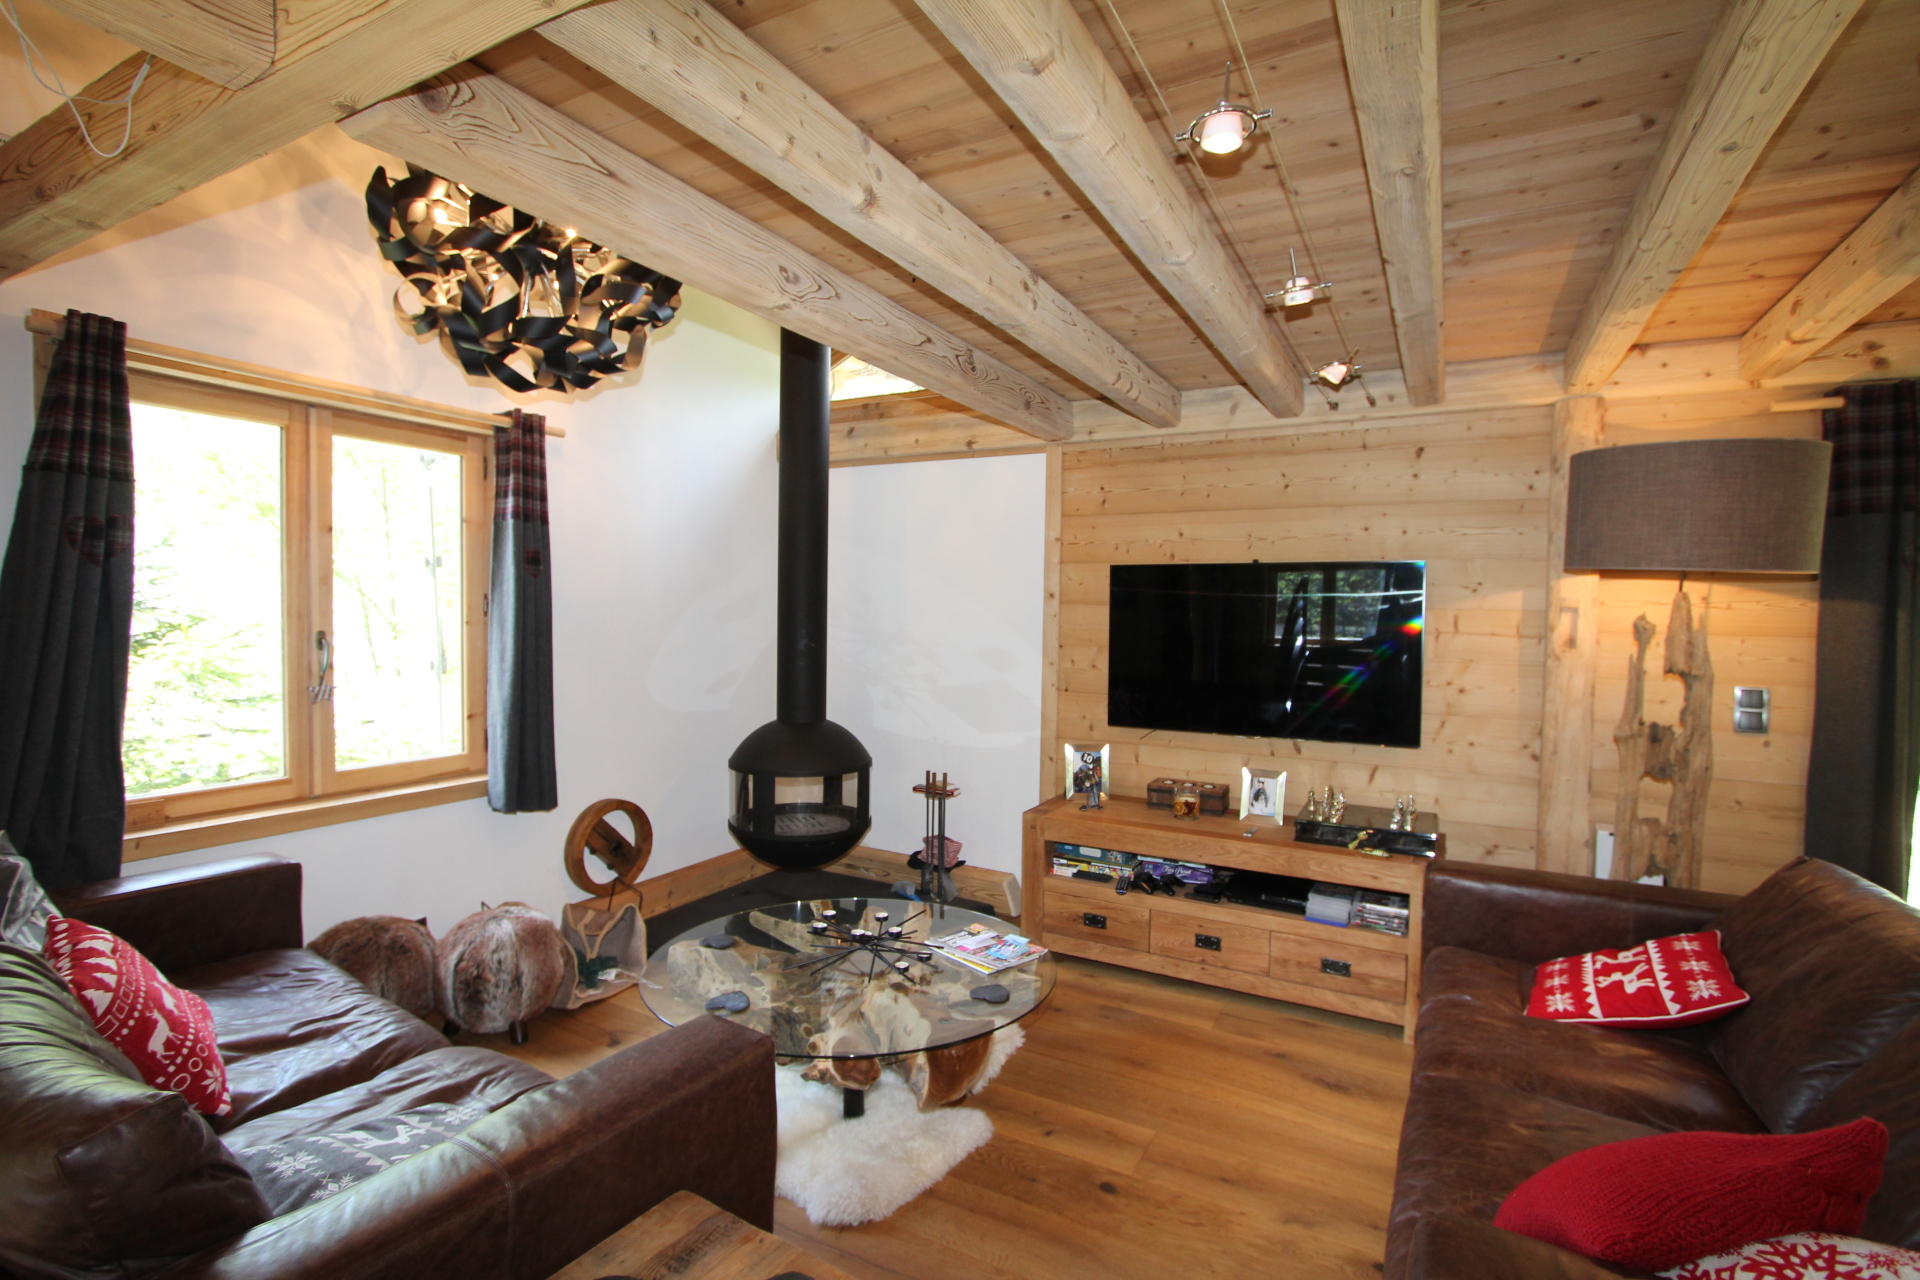 The completed chalet living room